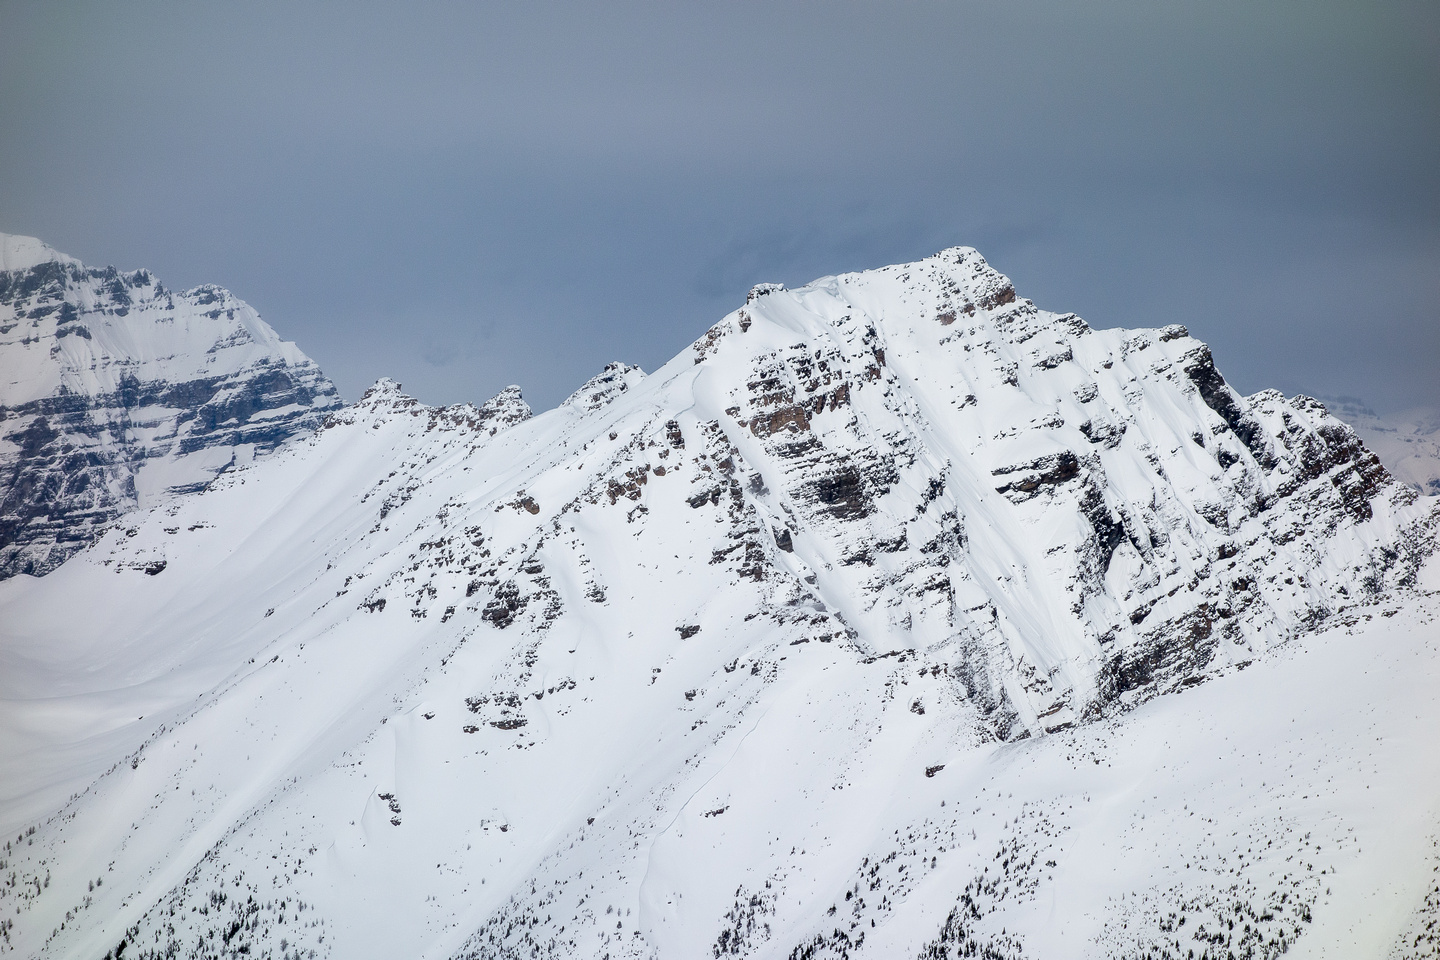 Mount Bell rises above Boom Lake to the north.